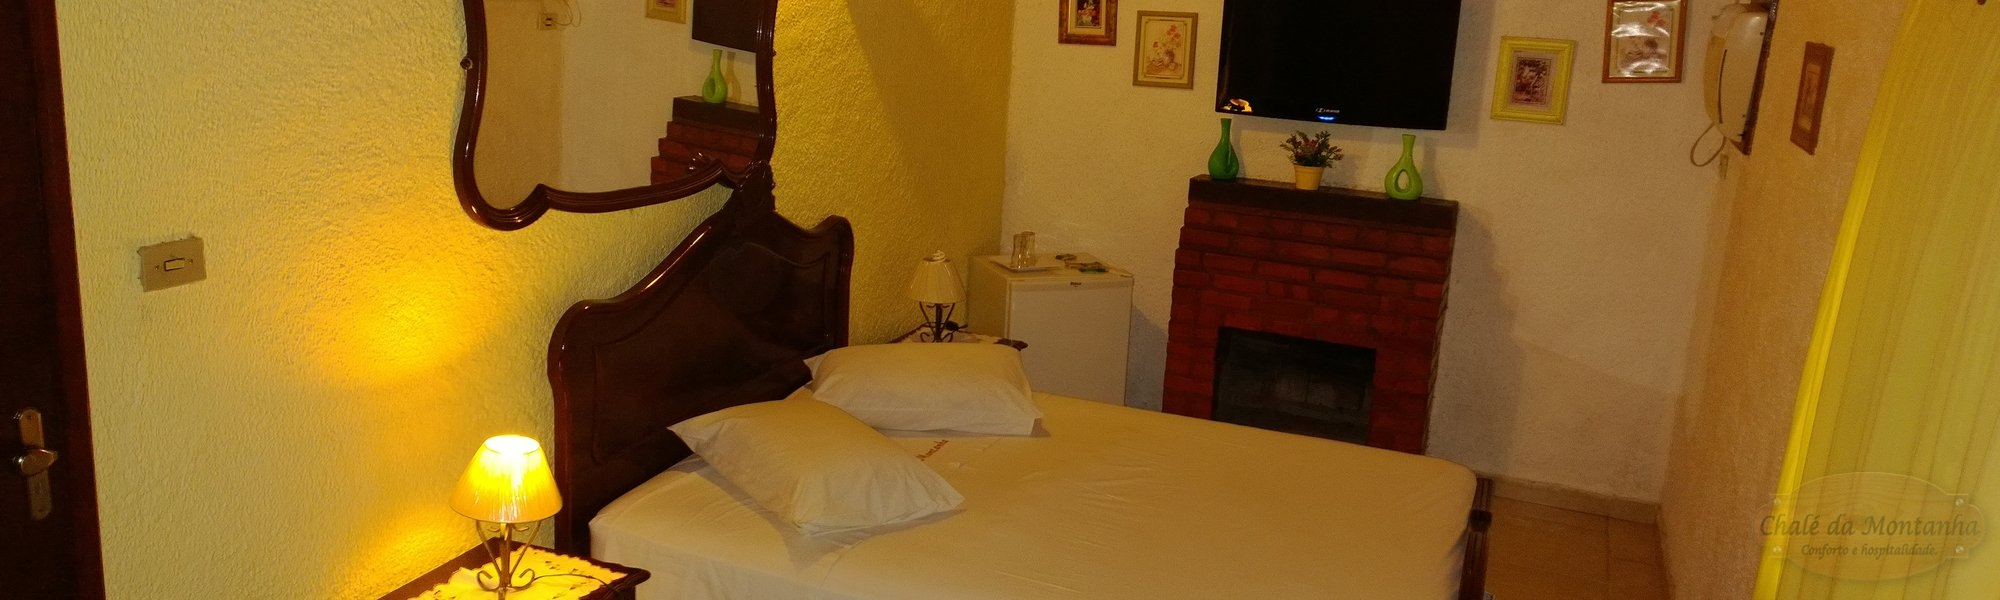 layer1-background